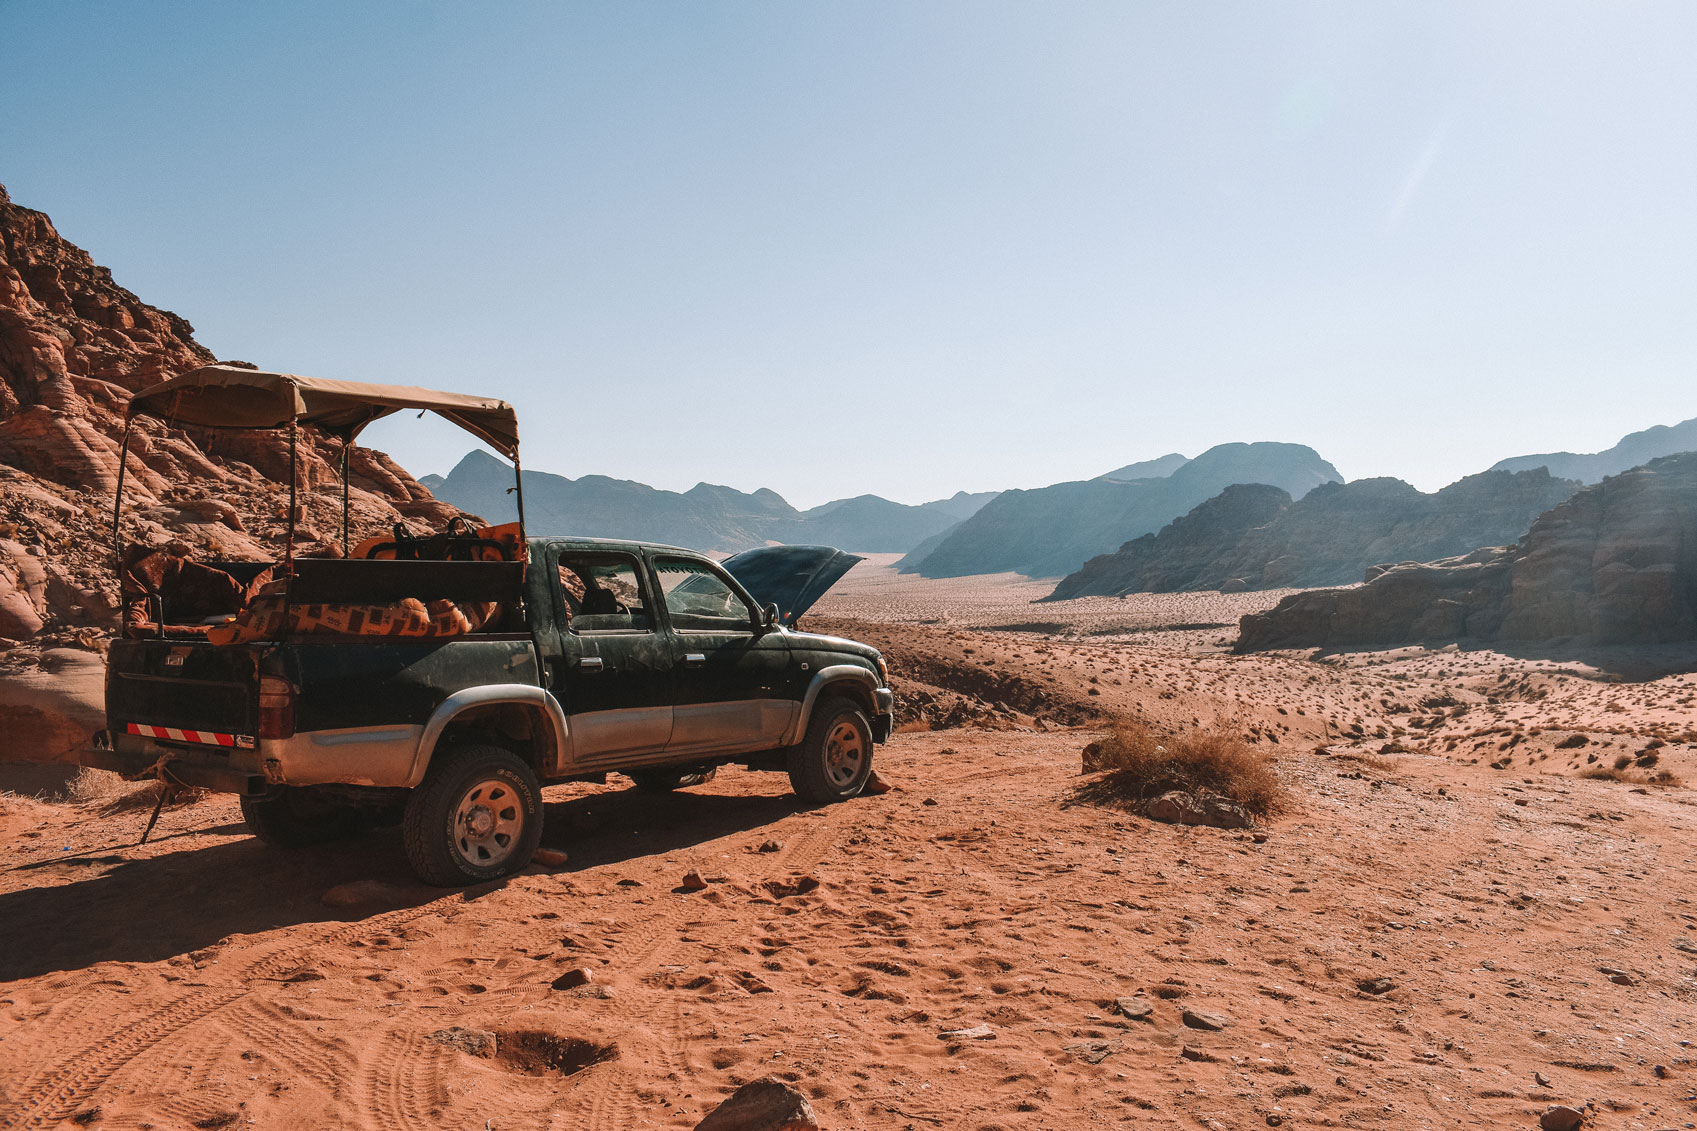 Open Jeep in Wadi Rum Desert